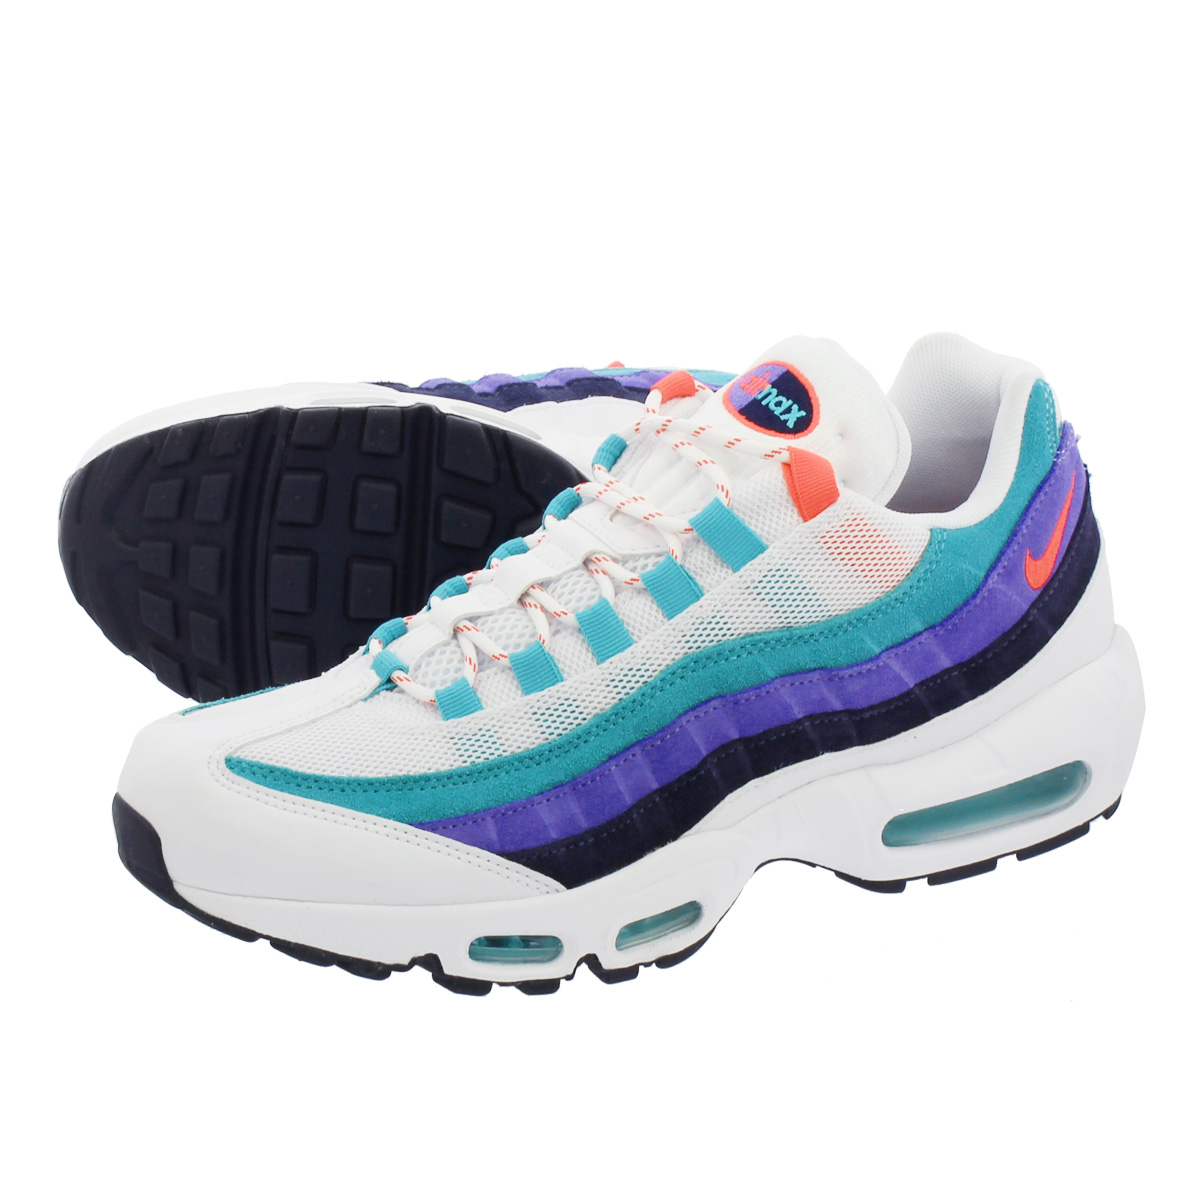 NIKE AIR MAX 95 ナイキ エア マックス 95 WHITE/FLASH CRIMSON/HYPER JADE av7939-100